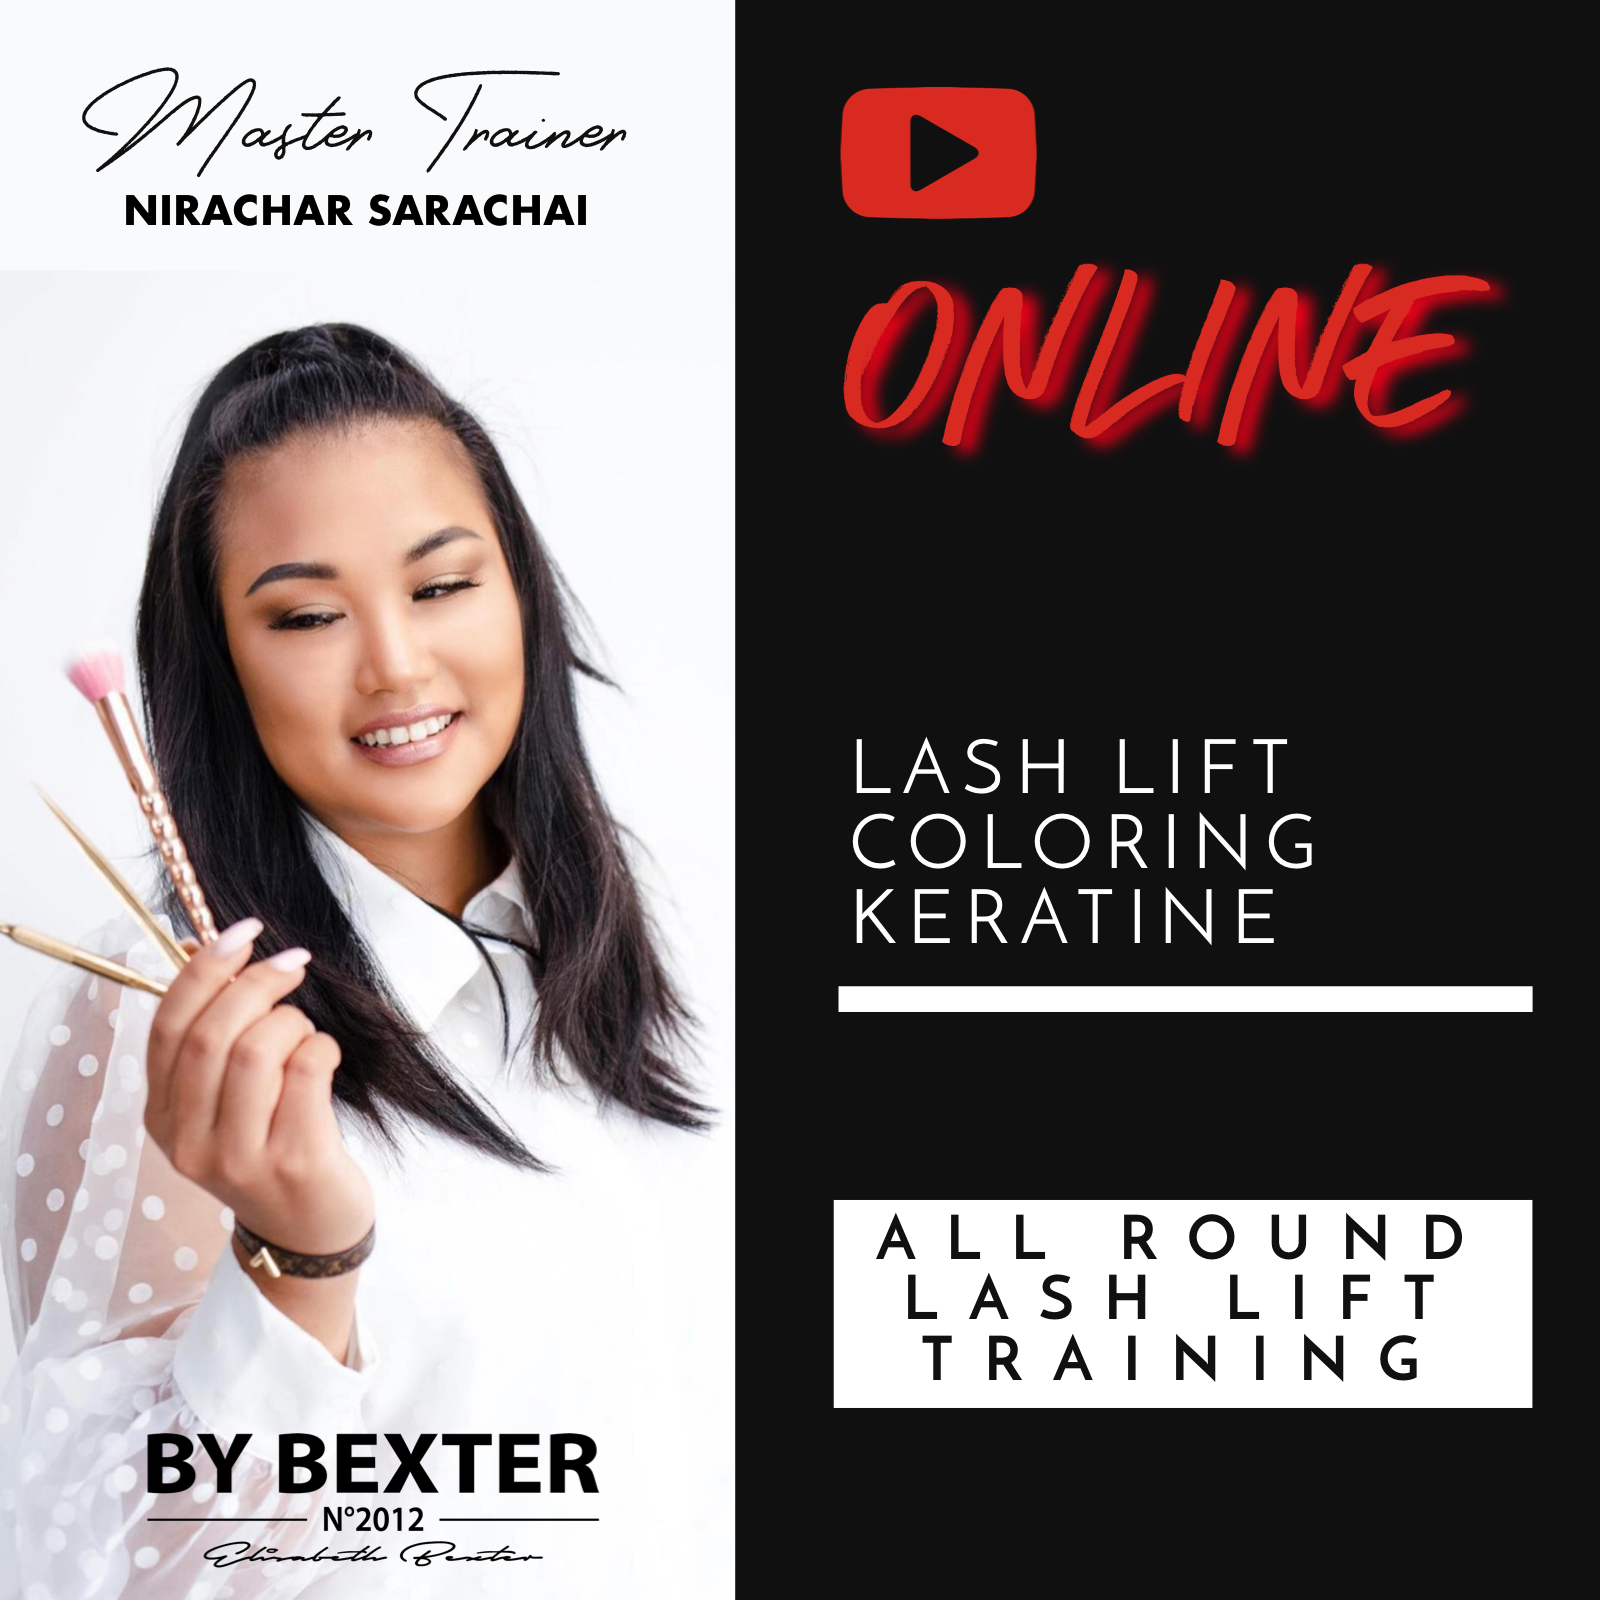 ONLINE BY BEXTER LASH LIFT & KERATINE TRAINING